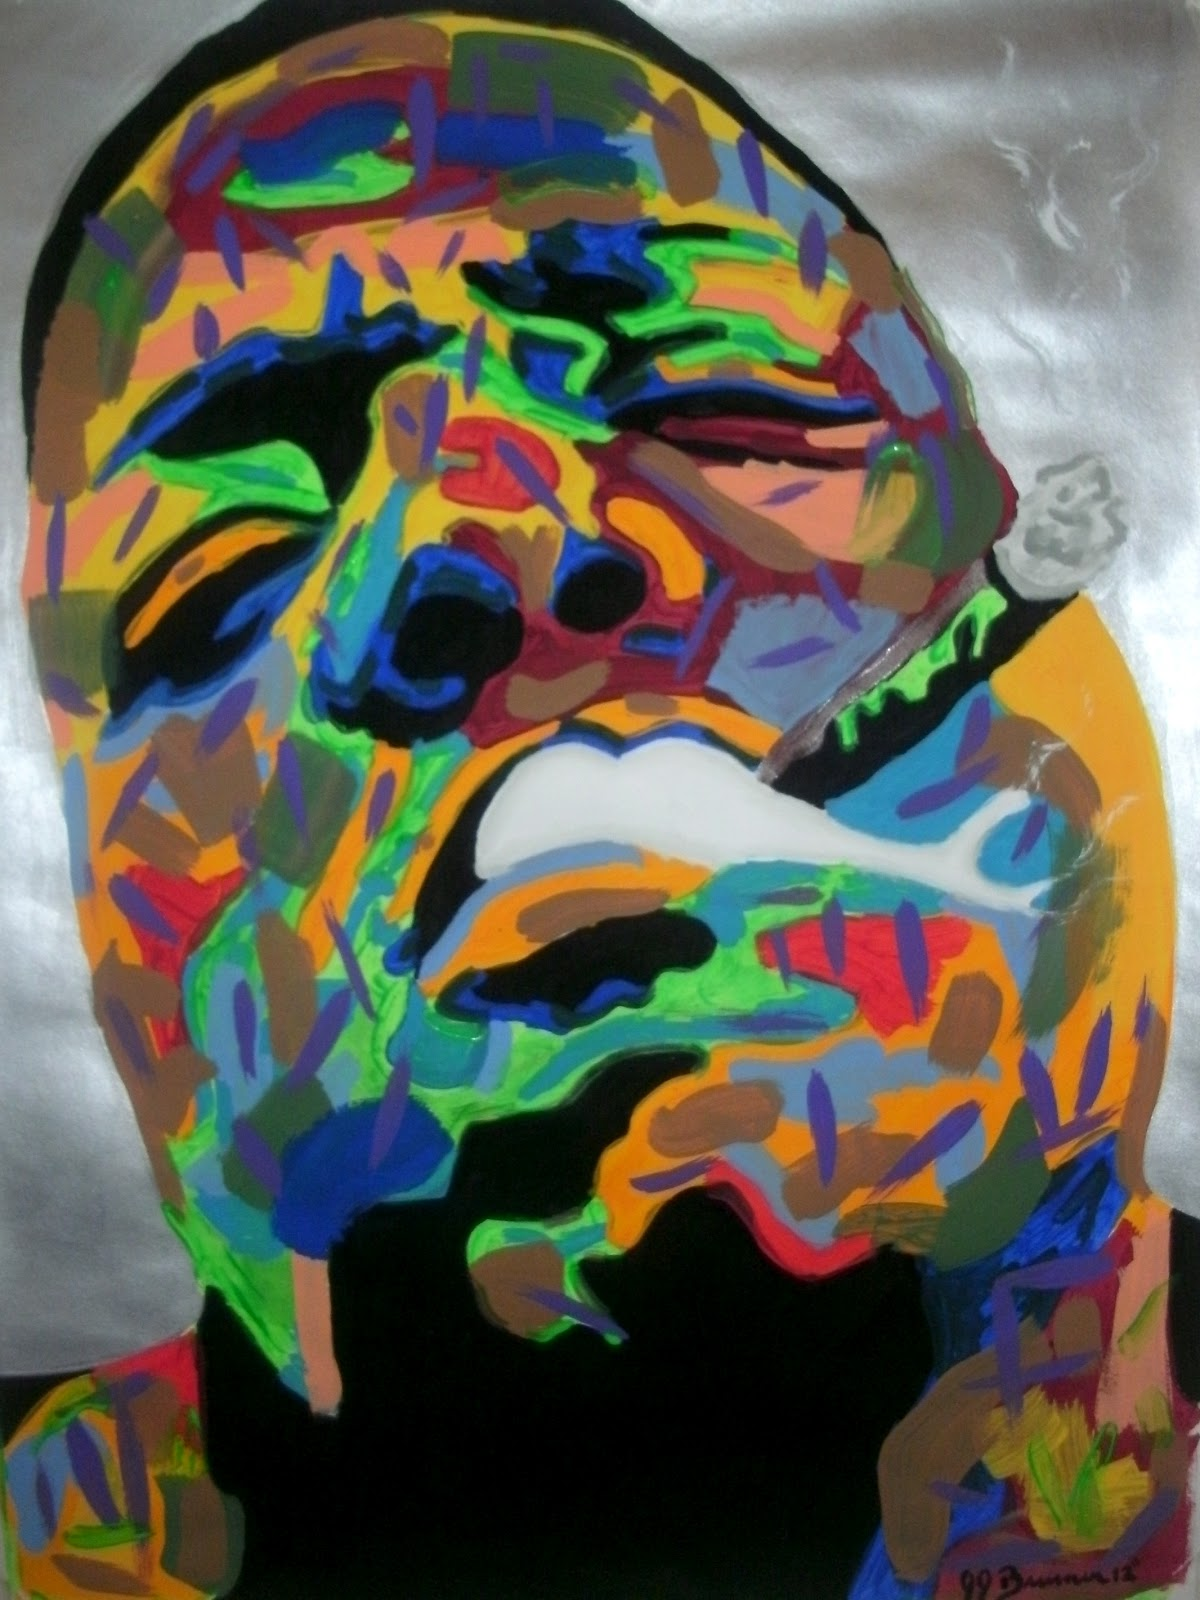 Notorious Big Paintings For Sale Artist Jj Burner